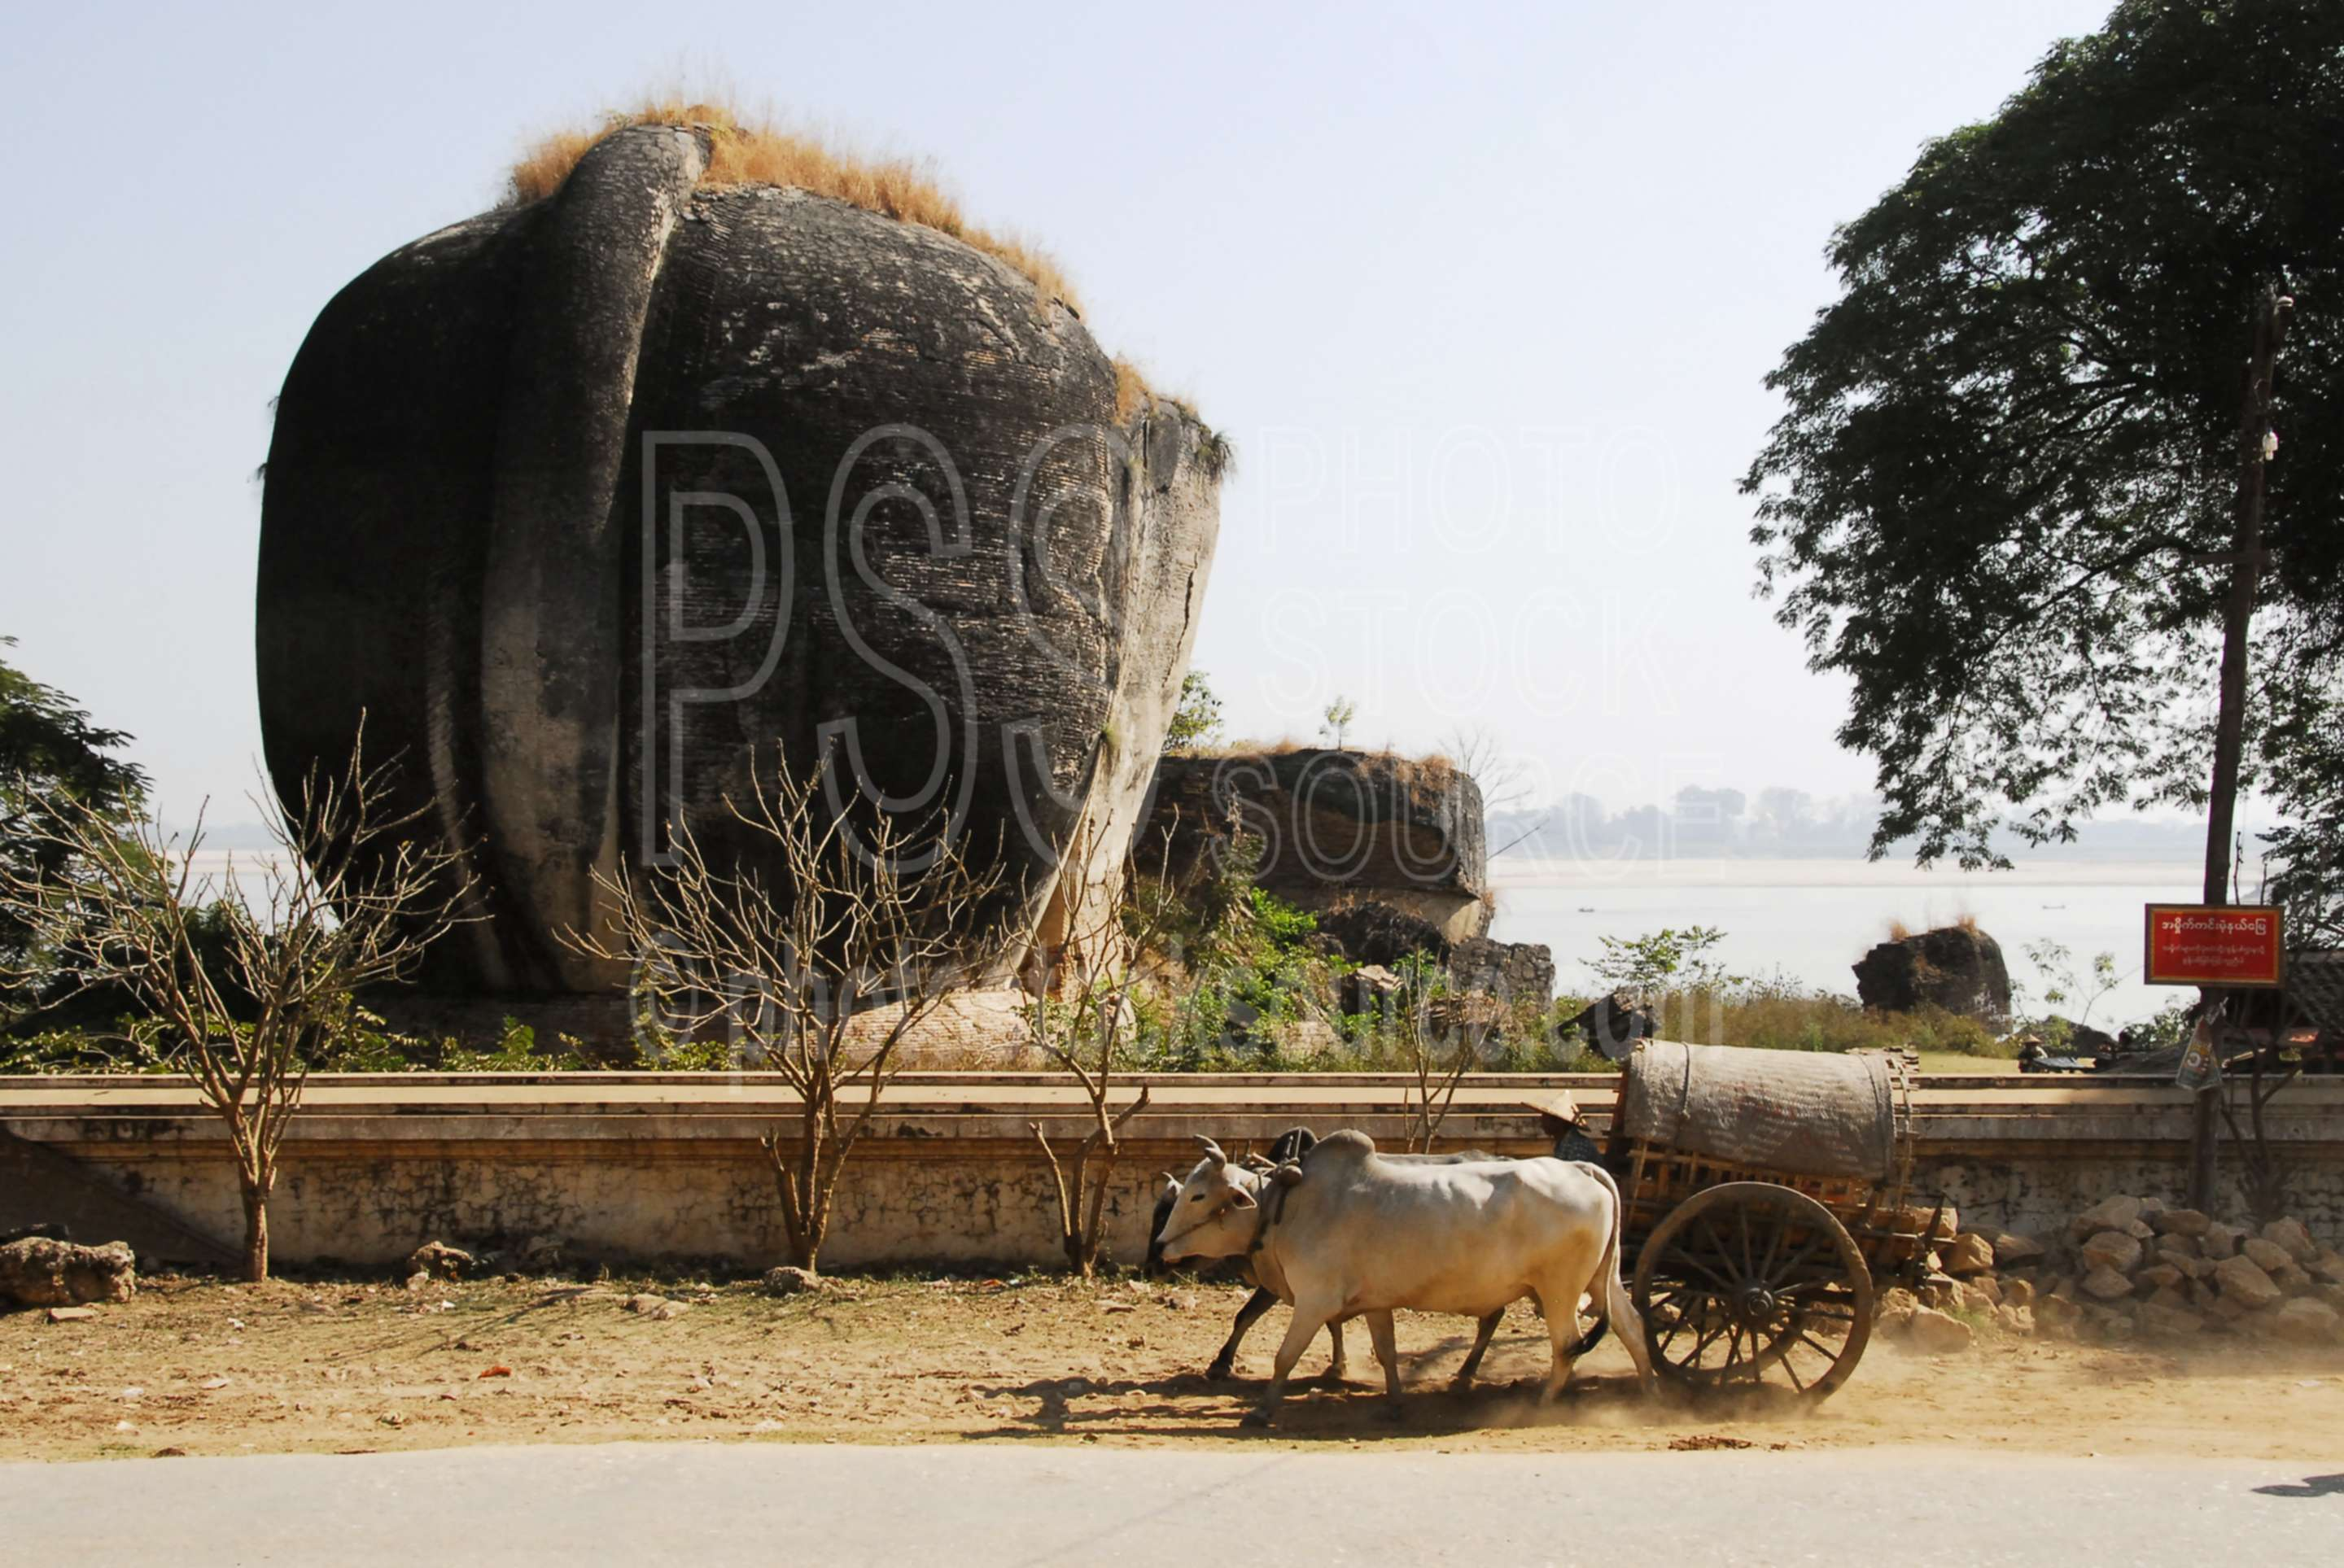 Ox Cart at Mingun Pagoda,myanmar,temple,ruin,lion,ox cart,transportation,taxi,wagon,mantara gyi,mingun pahto